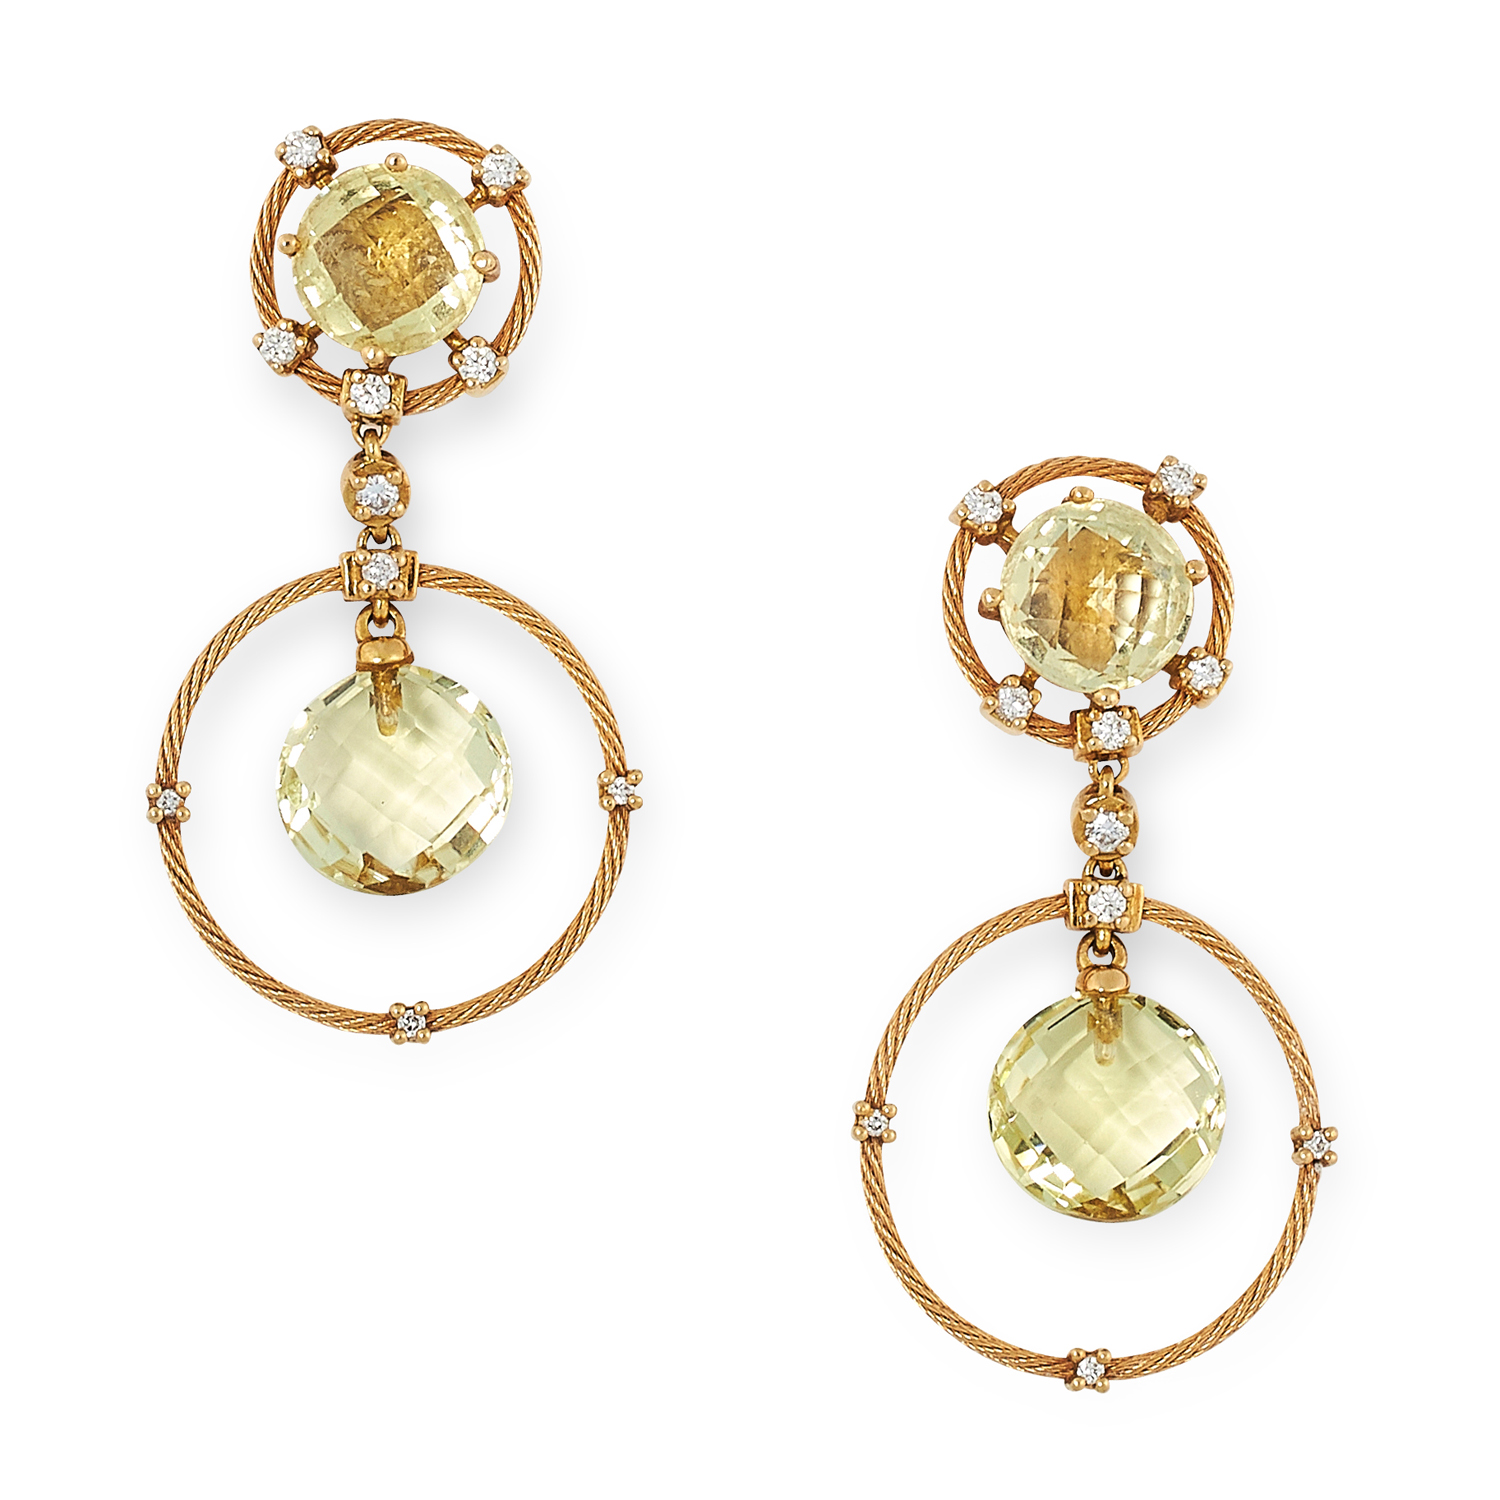 A PAIR OF CITRINE AND DIAMOND EARRINGS, MORELLI in 18ct yellow gold, each comprising of a faceted